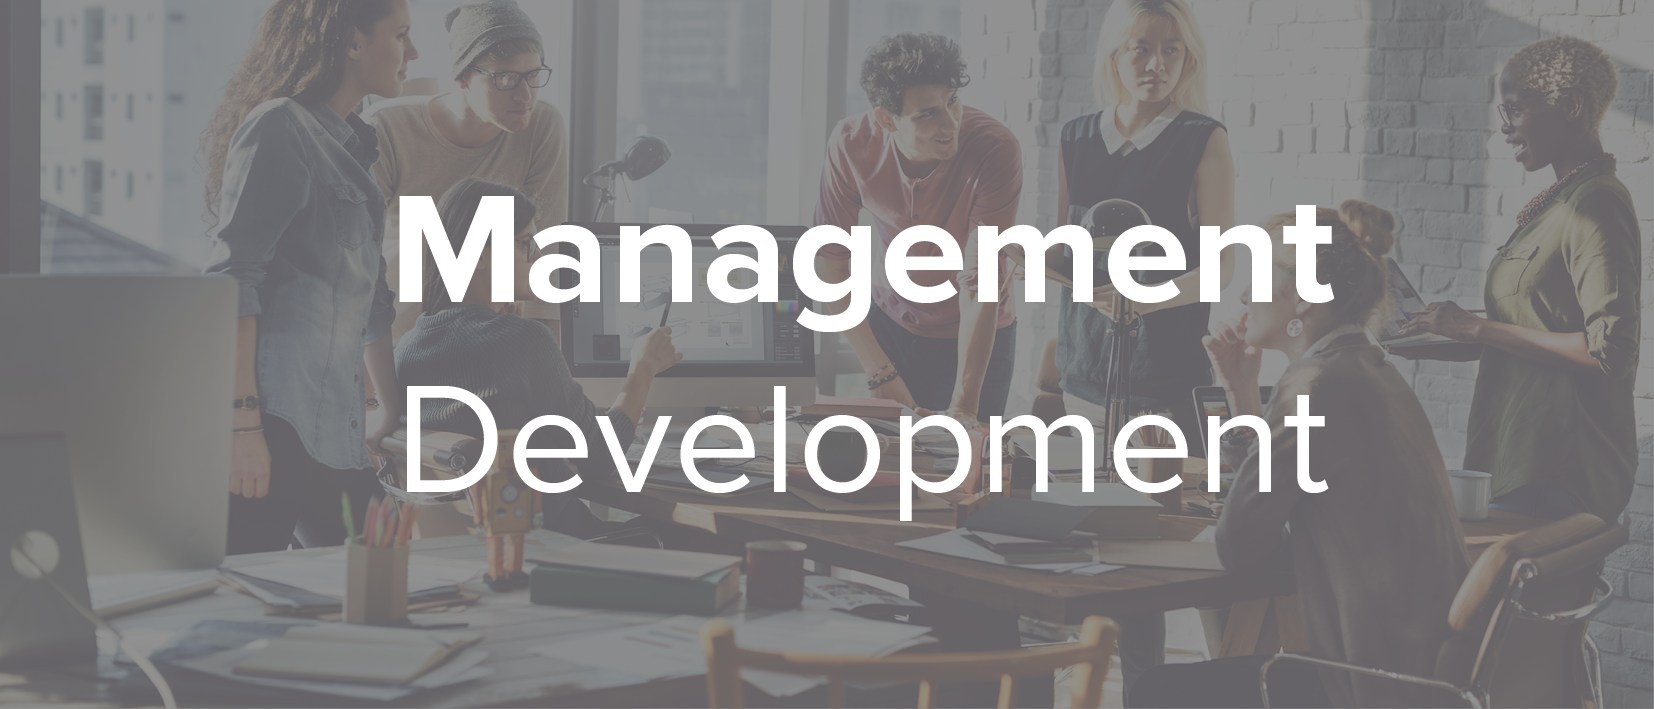 We help managers to build skills and weave together the processes and the humanity of great management, to create high-performing organisations.